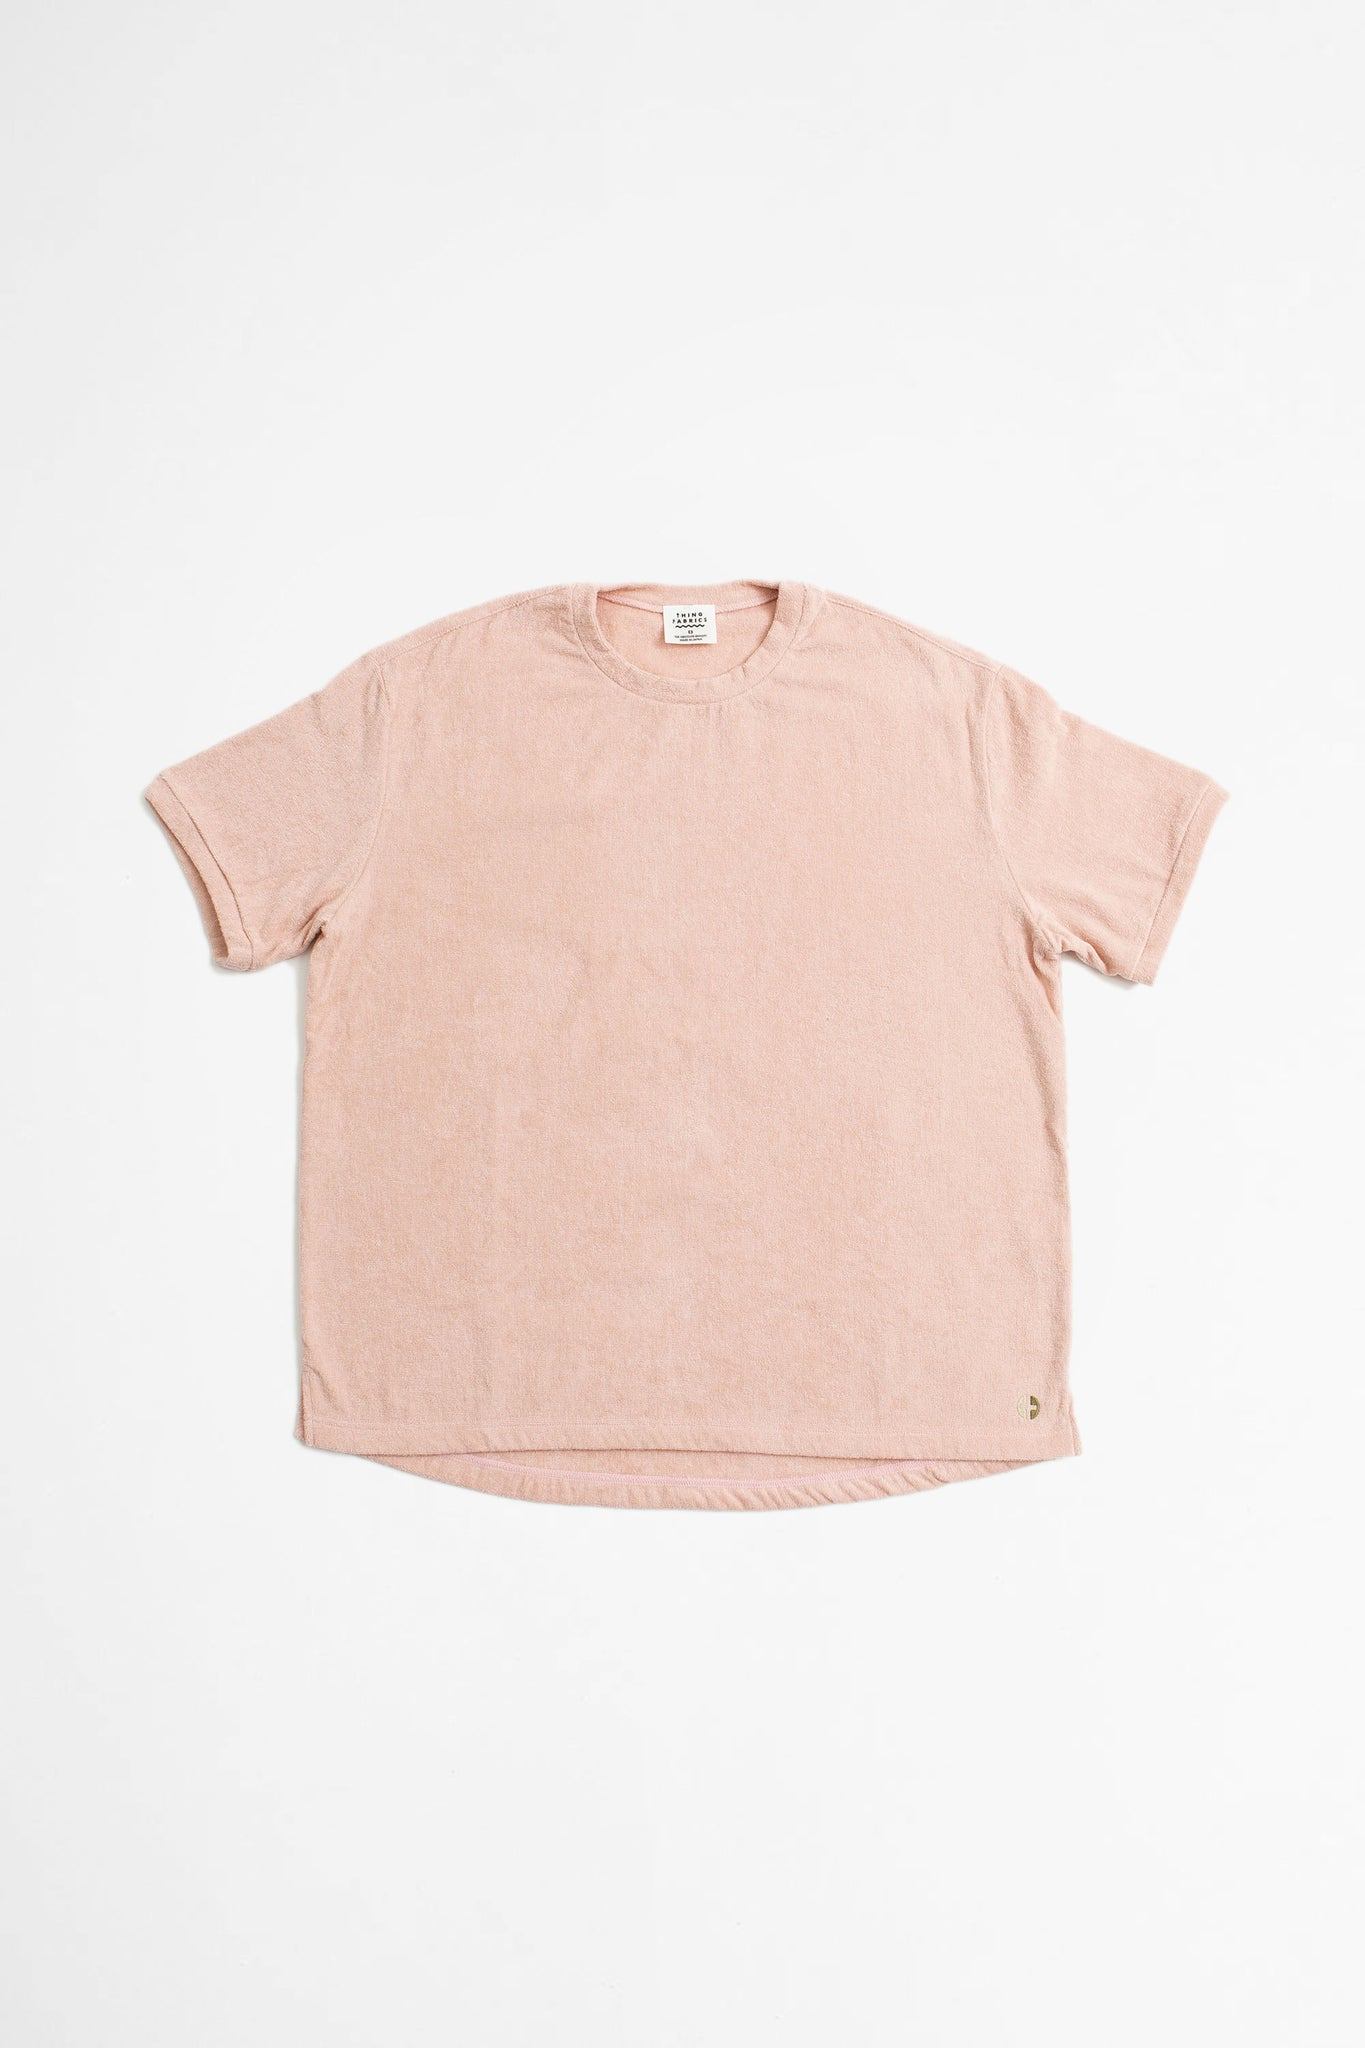 T-shirt silver pink